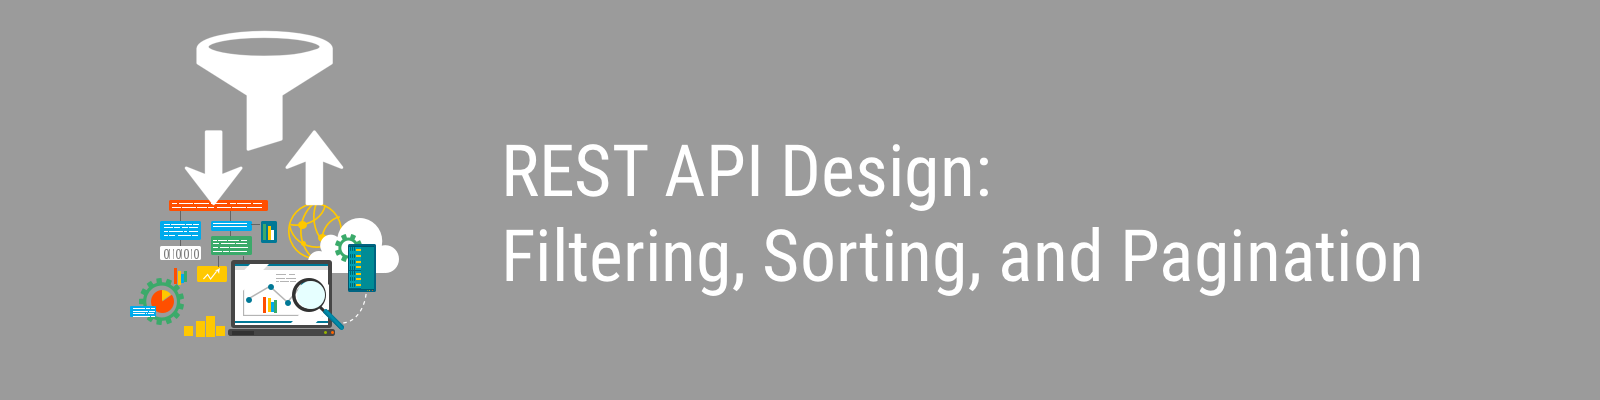 REST API Design: Filtering, Sorting, and Pagination